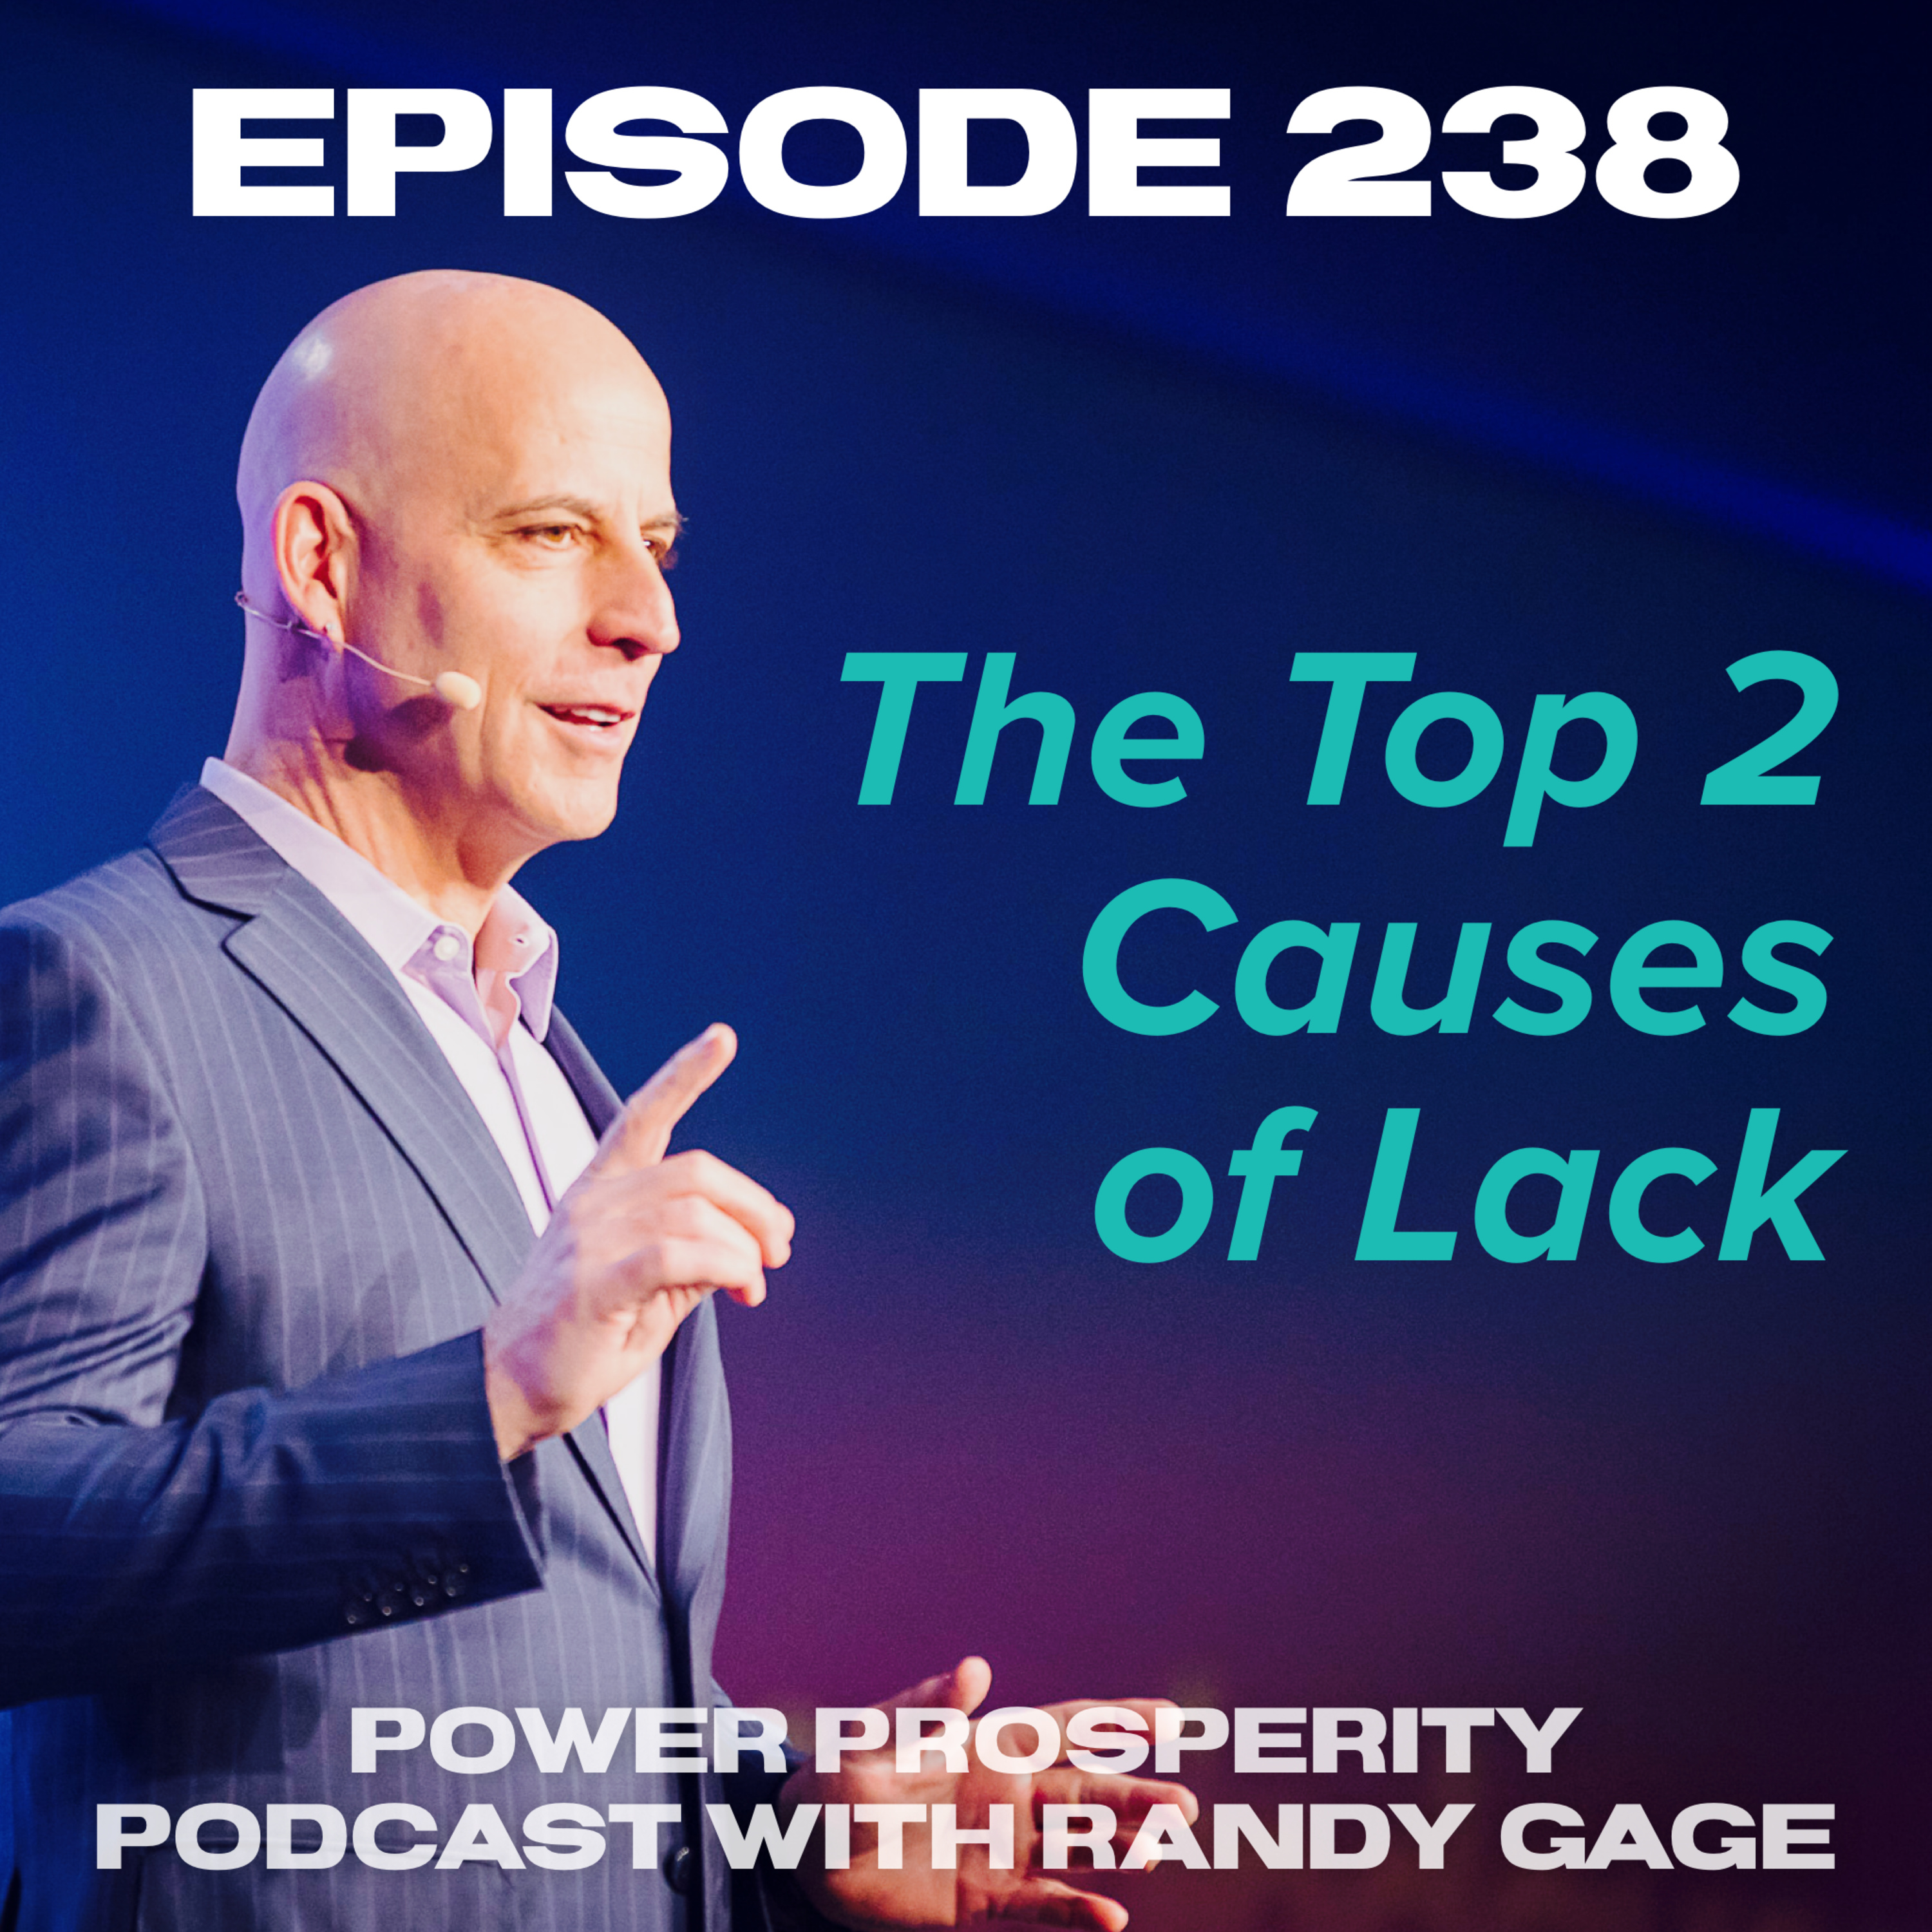 Episode 238: The Top 2 Causes of Lack (Podcast Exclusive)